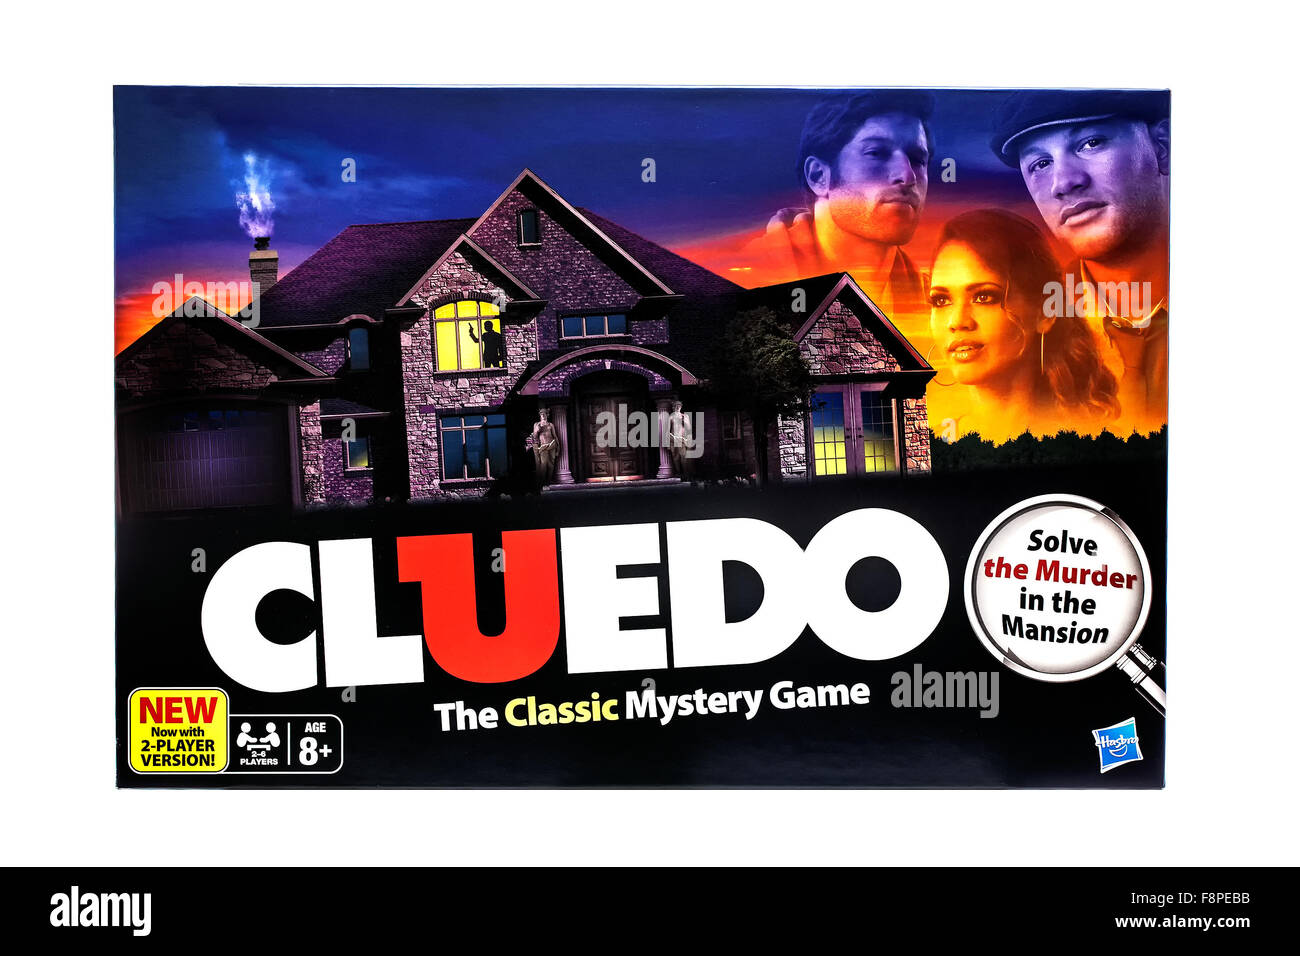 Cluedo Classic murder mystery game for three to six players on a White background - Stock Image